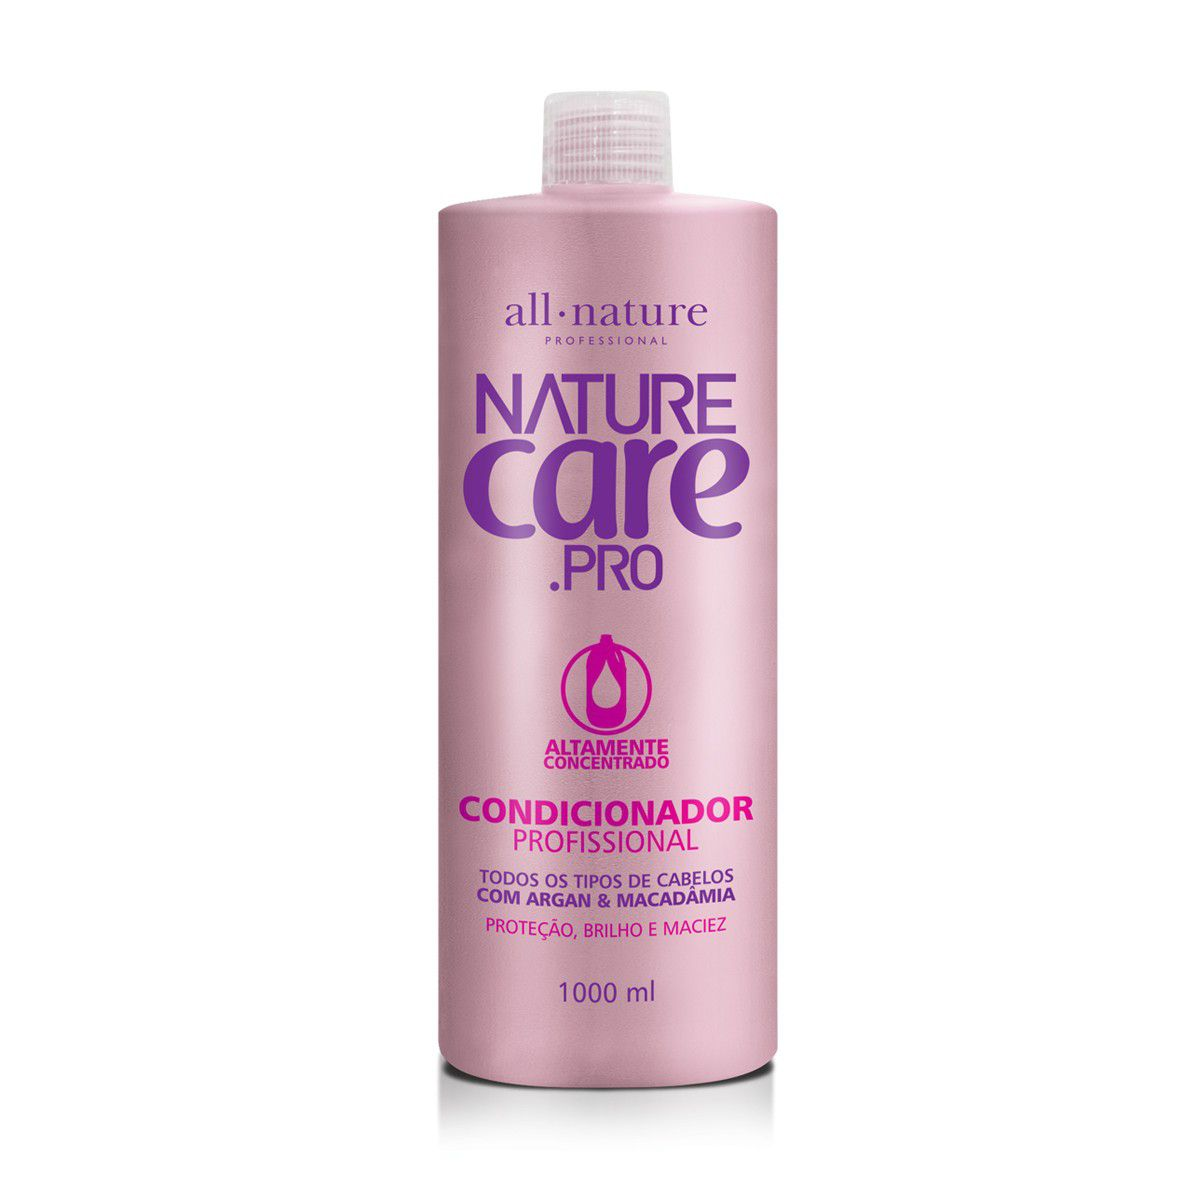 Condicionador Nature Care Pro Com Argan e Macadâmia, Fórmula Balanceada 1000ml   All Nature